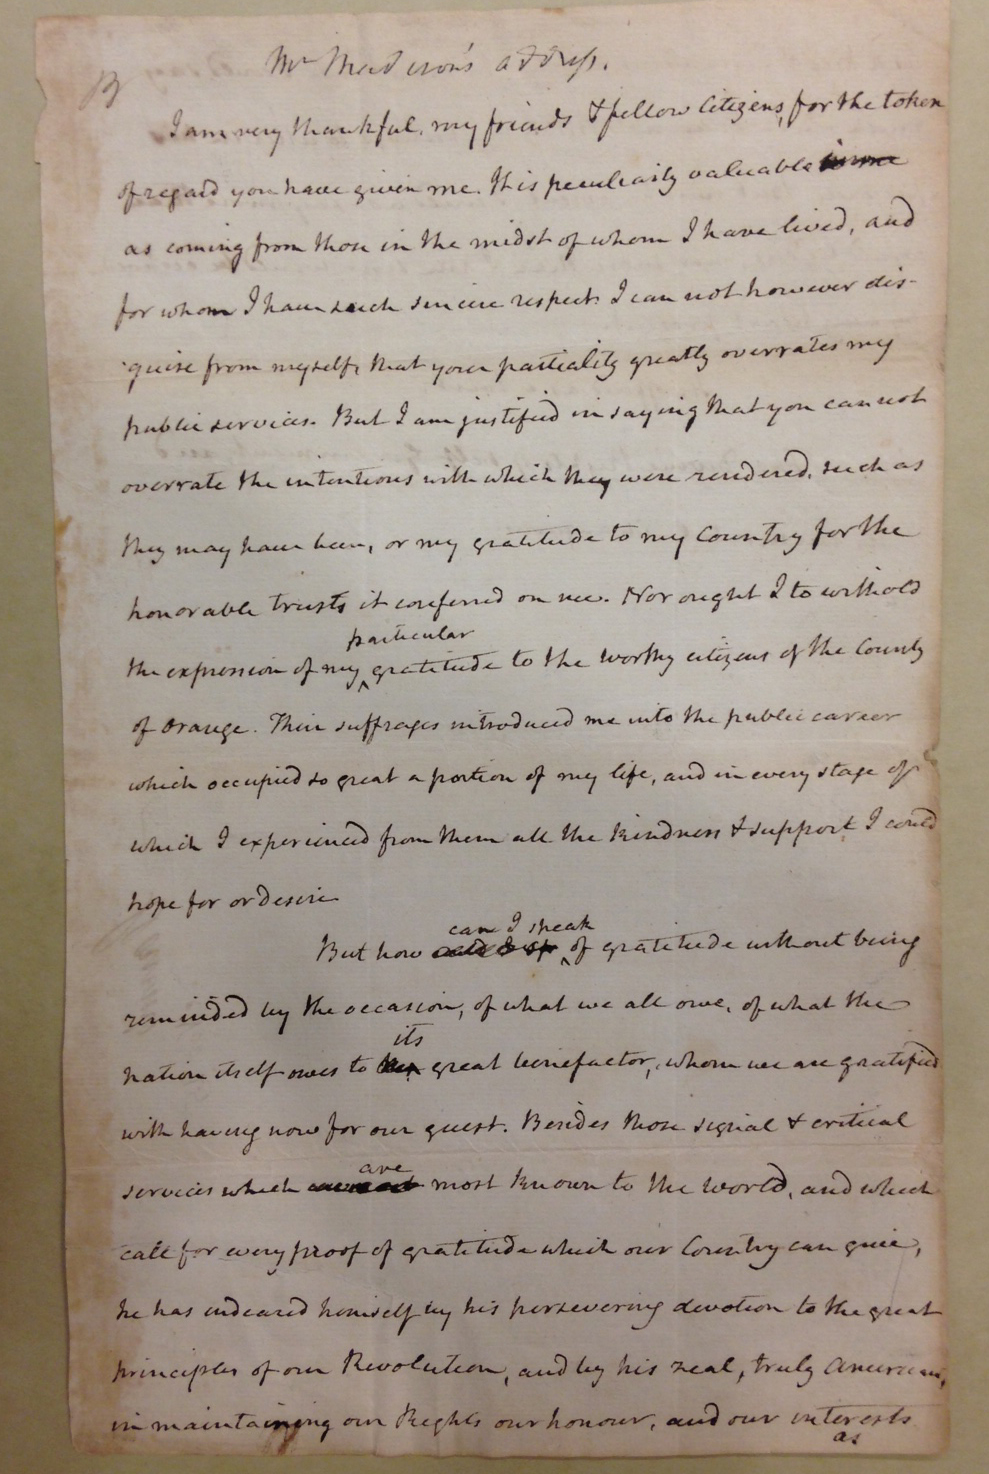 James Madison's remarks introducing Lafayette to the citizens of Orange, Va., November 25, 1824.   (MSS 4677)